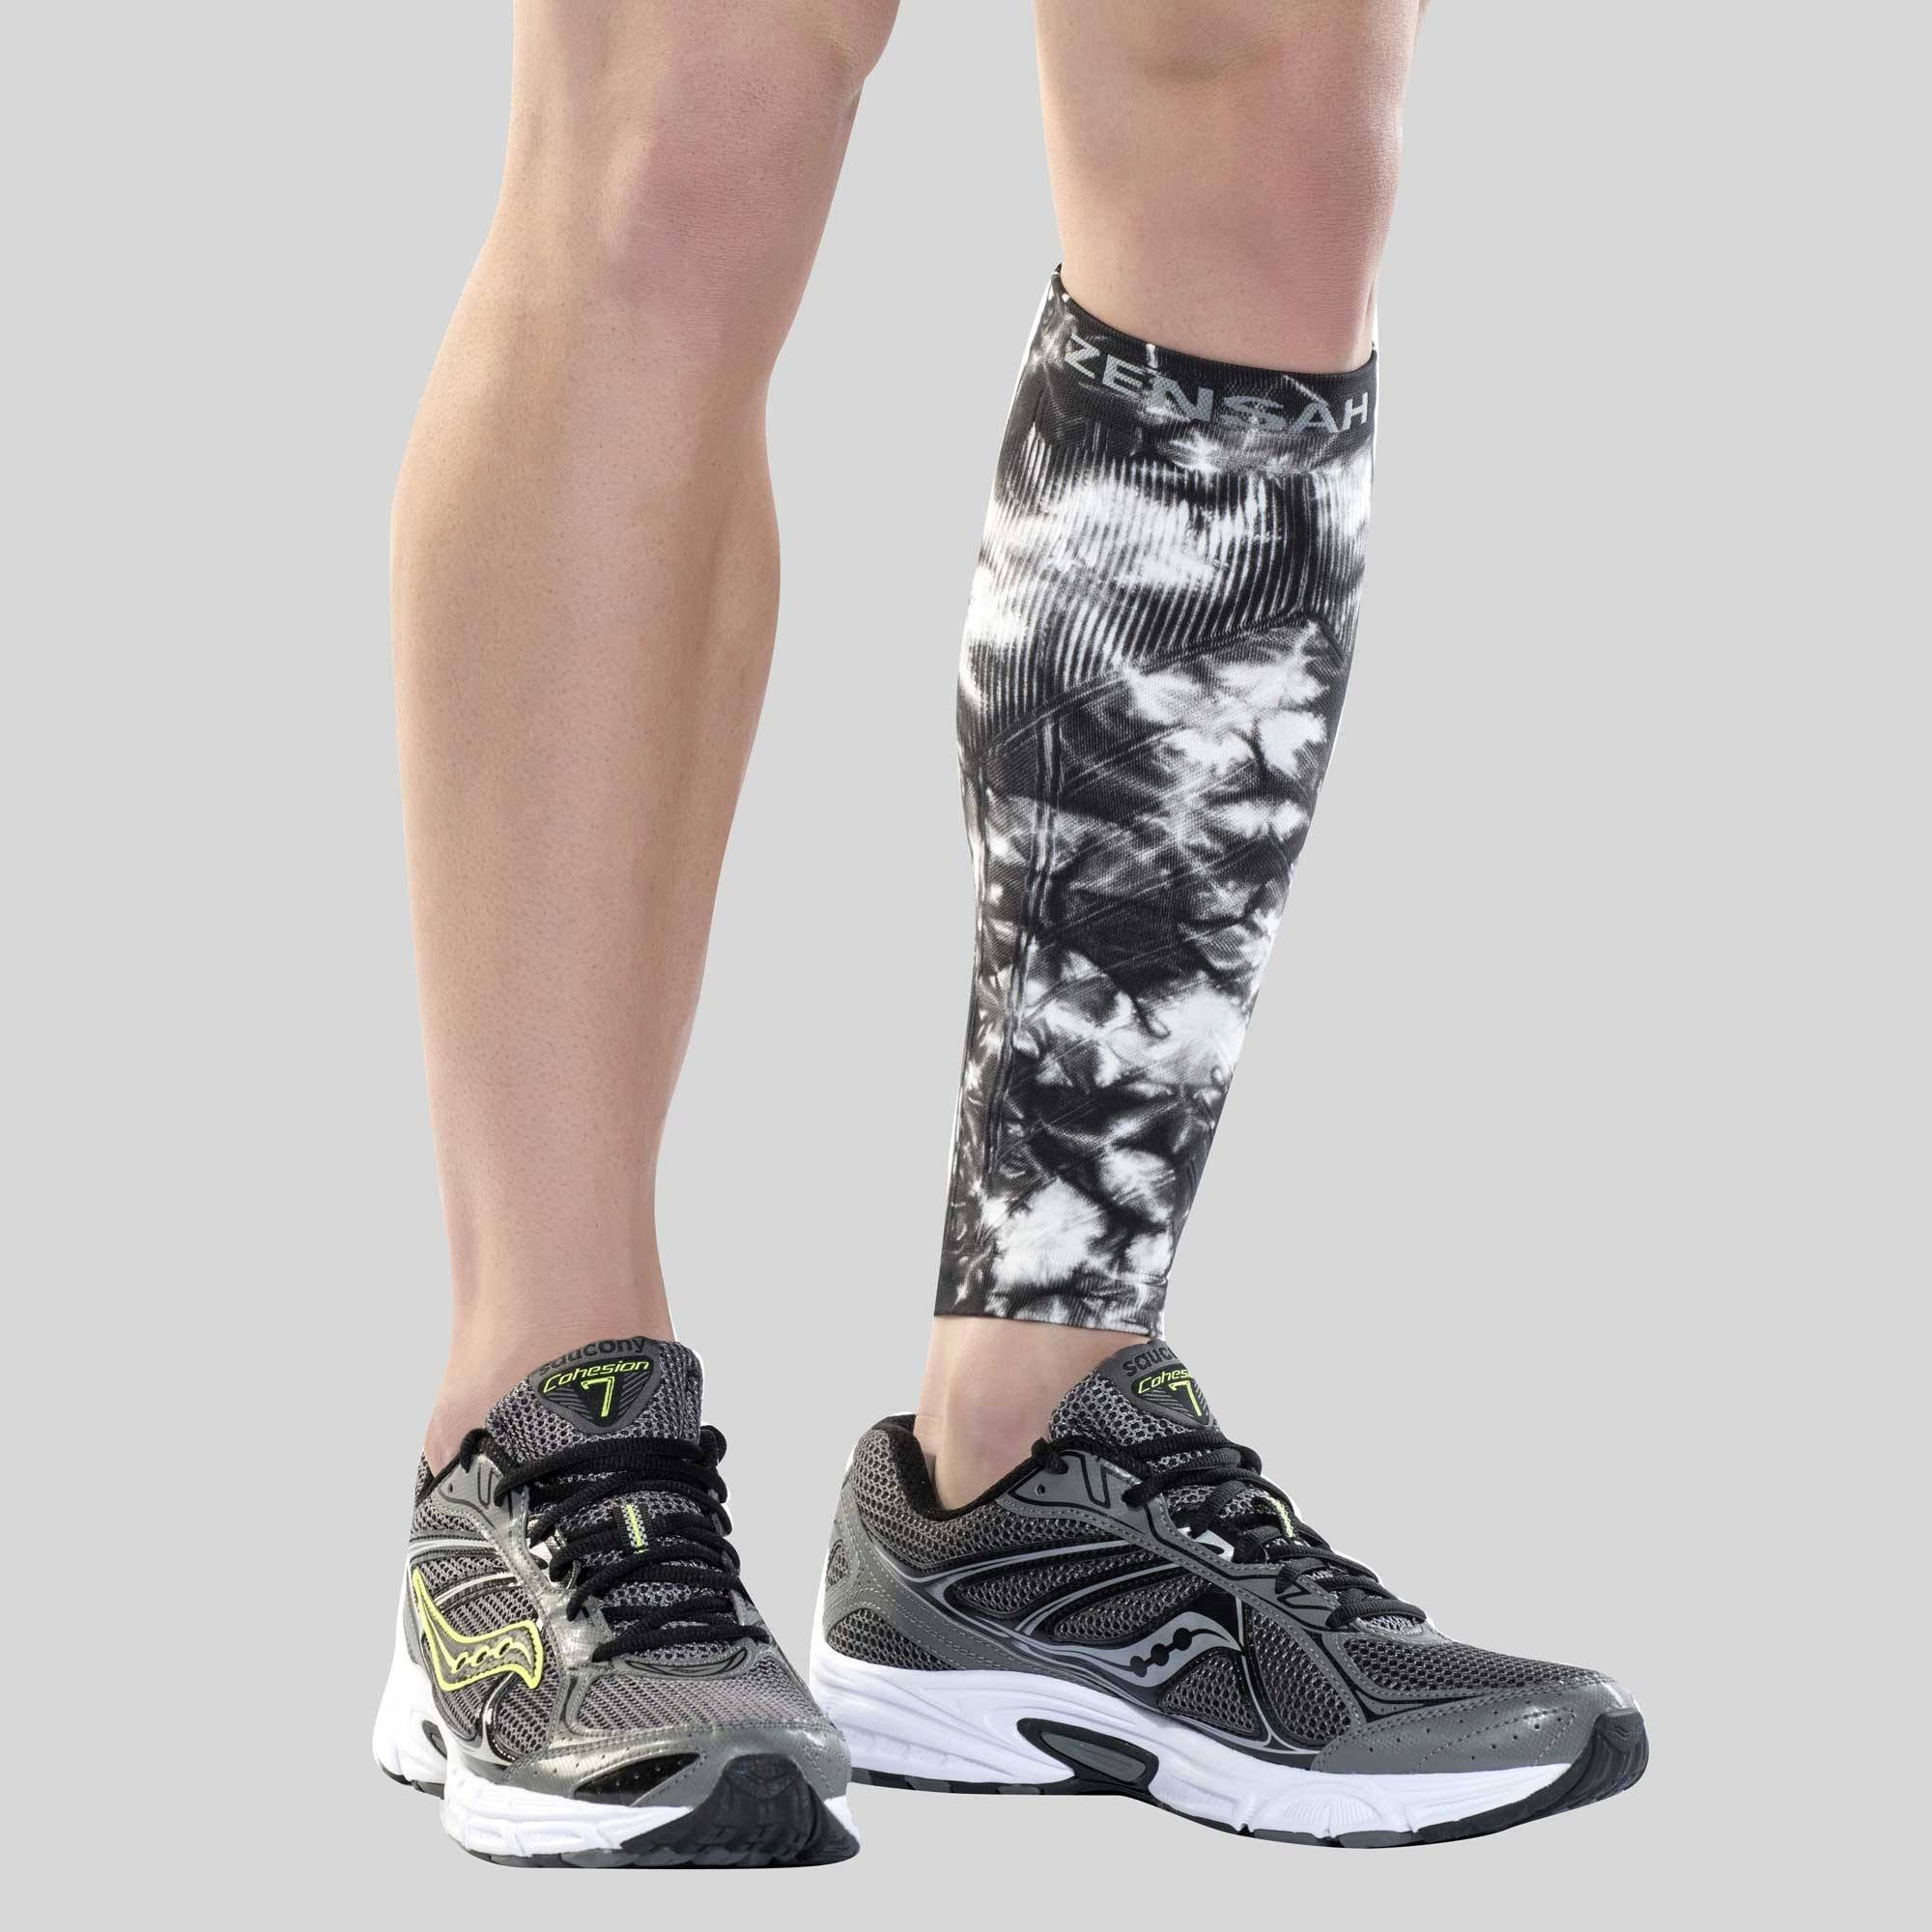 aa3cdf03691 Calf   Shin Splint Compression Sleeve